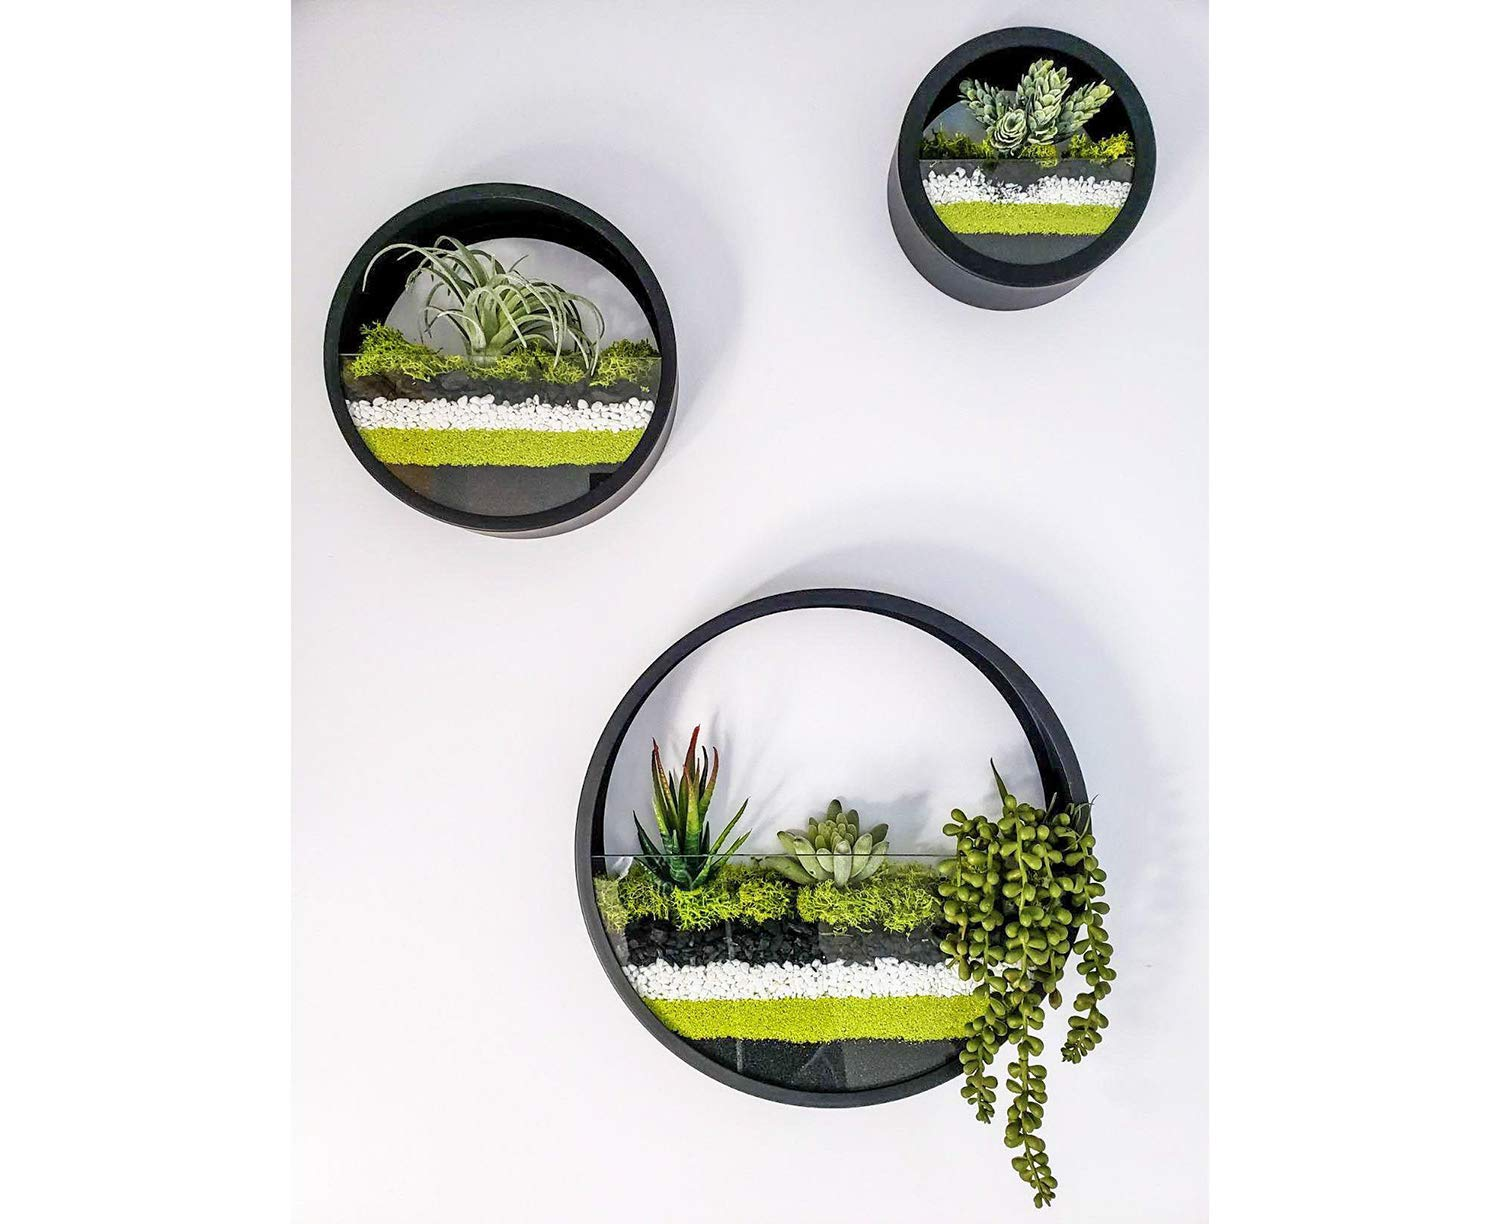 Round Hanging Wall Vase Succulent Planter Vase- Metal Flower Pots, Indoor Decorative Air Plants Container Faux Plants, Cacti and More, Dark Black Color – in Gift Box Set of 3